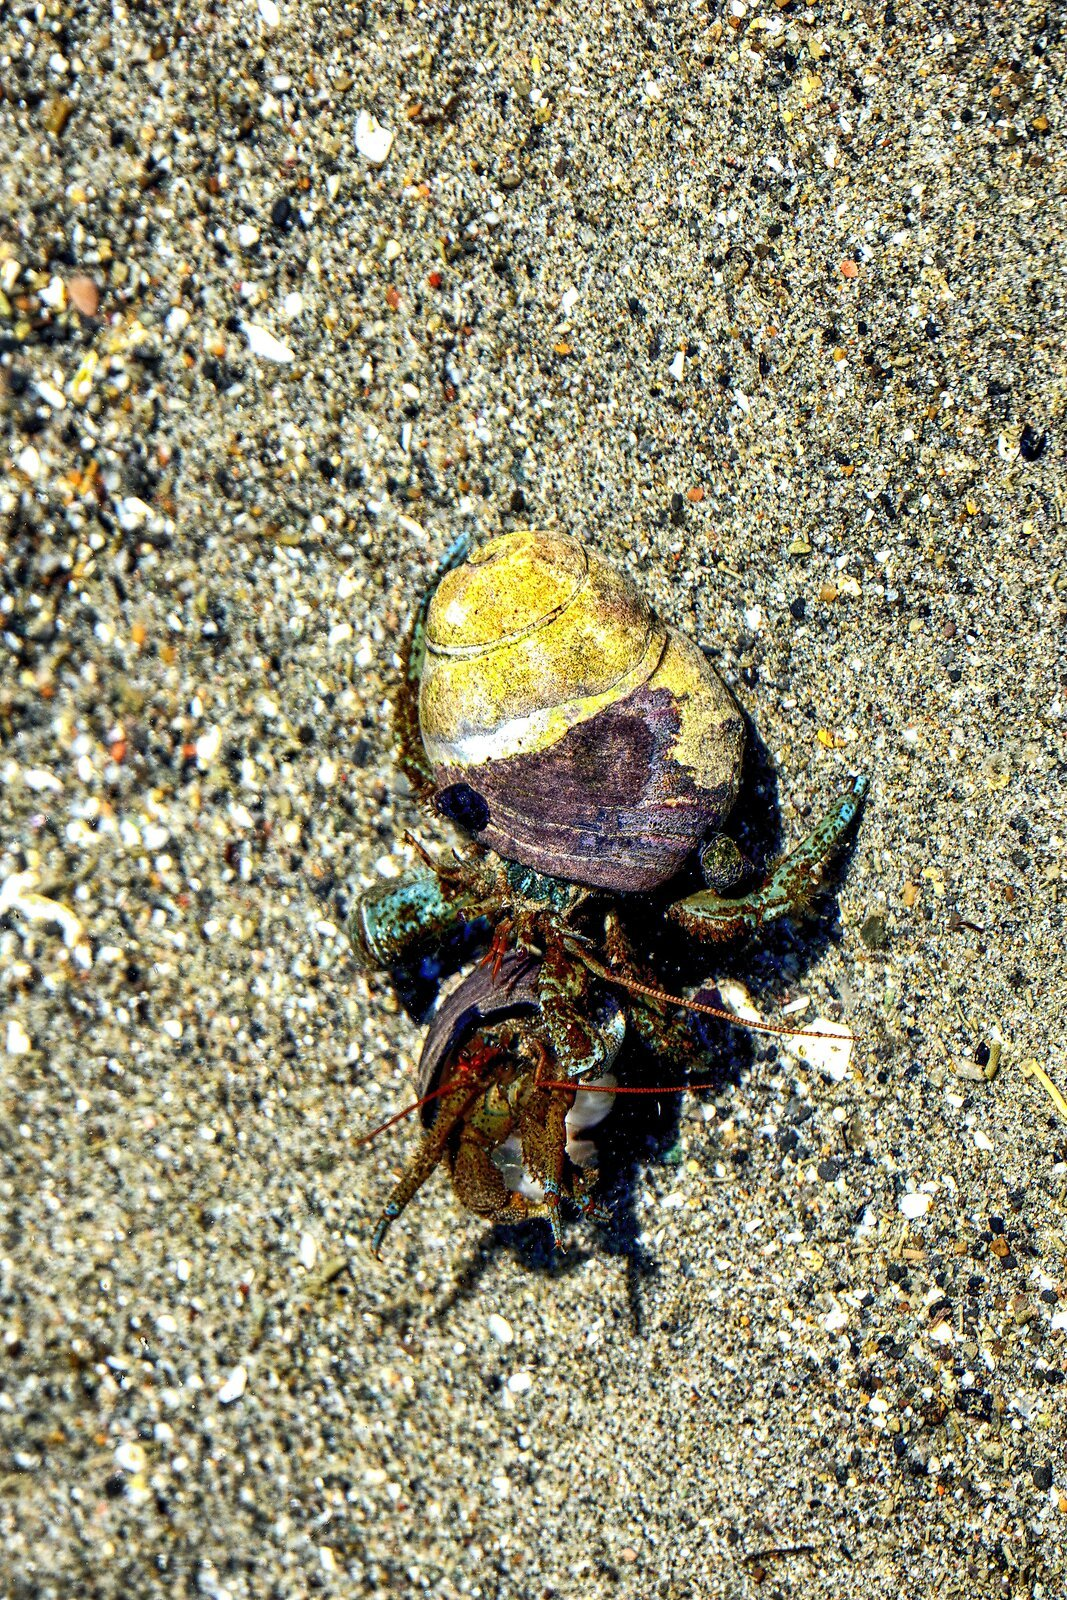 RX10_May18_21_2_hermit_crabs#3.jpg